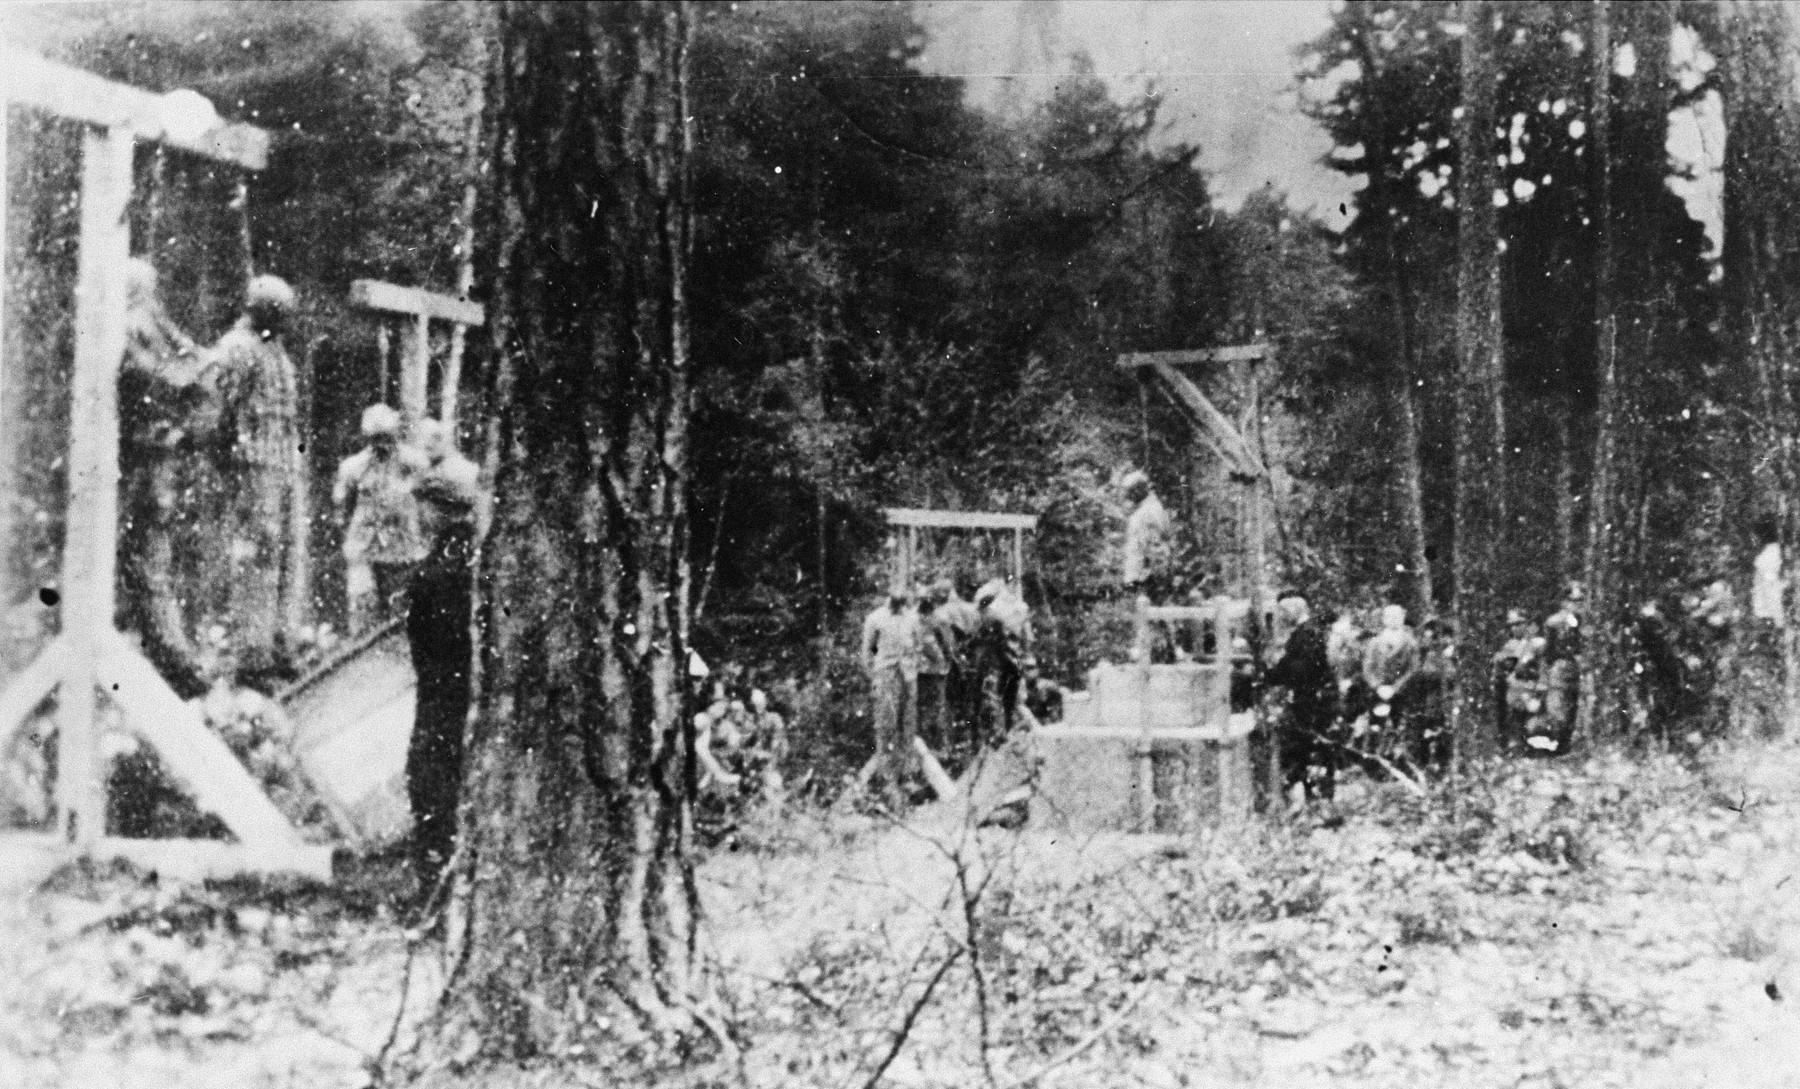 The execution of twenty prisoners from Buchenwald, most of them Jews, in the forest near the camp.   The prisoners were hanged in retaliation for the murder of a German guard or policeman, and the entire camp was forced to view the hanging corpses.